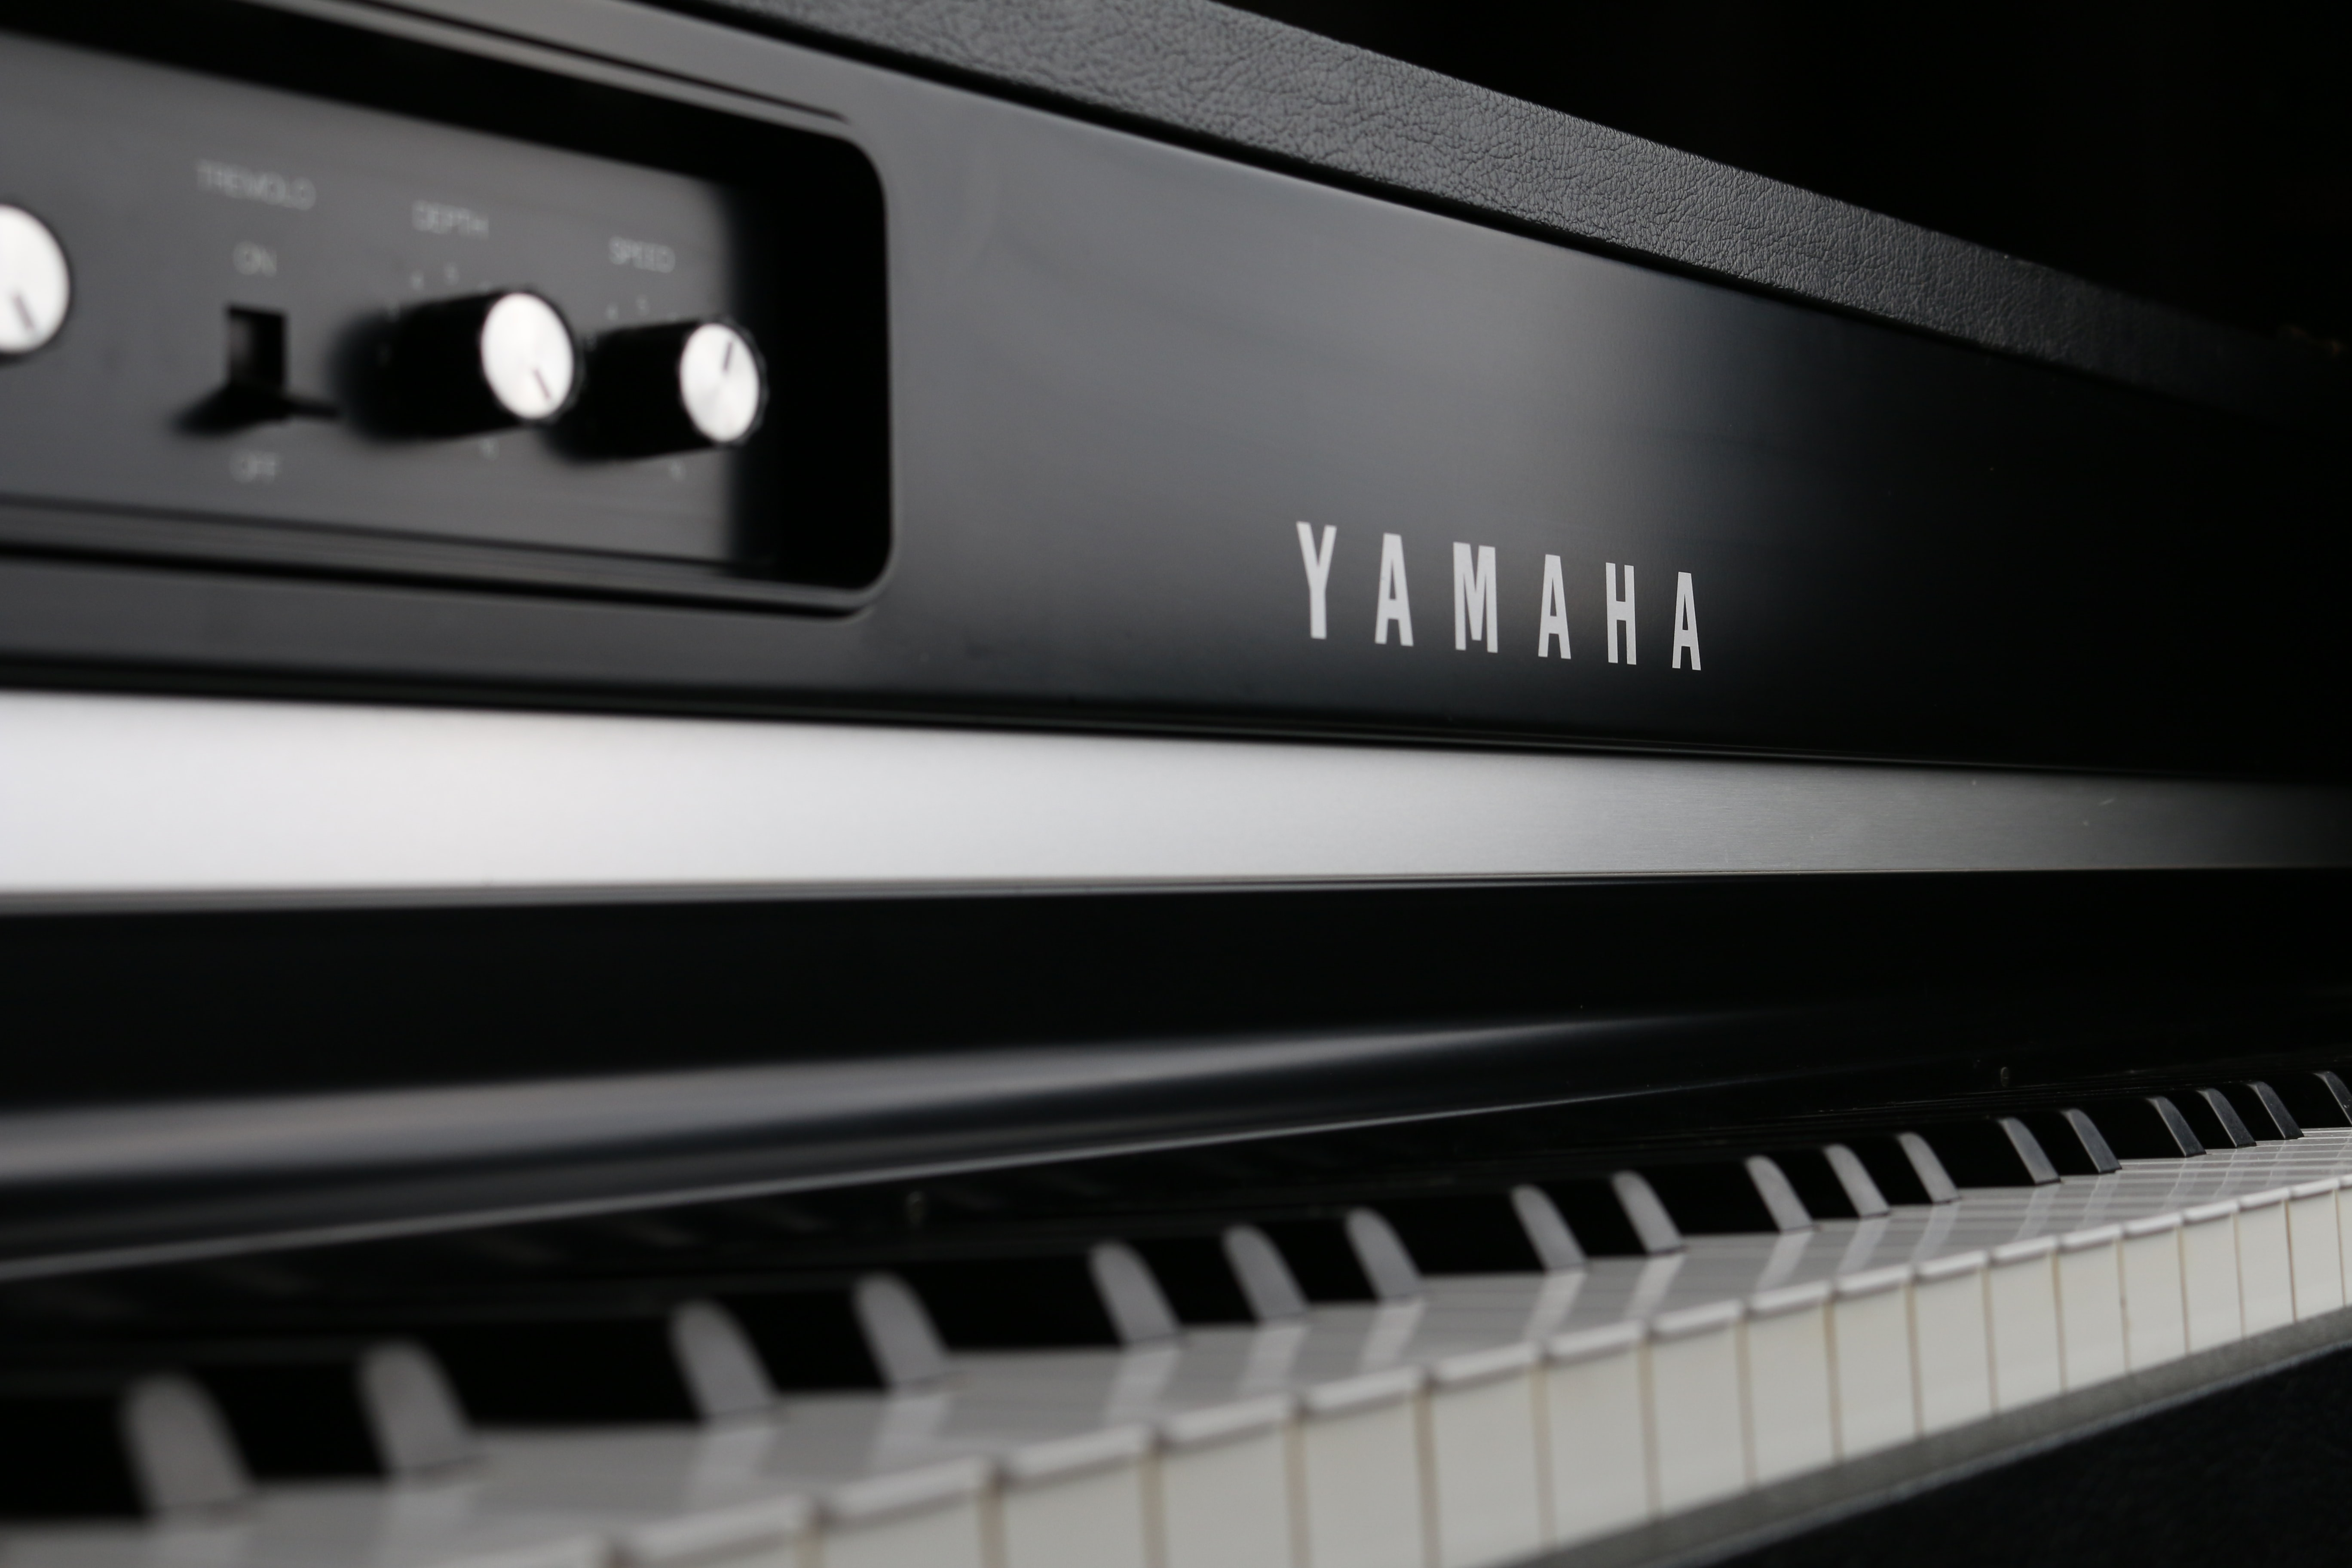 A close-up of a black and white Yamaha keyboard